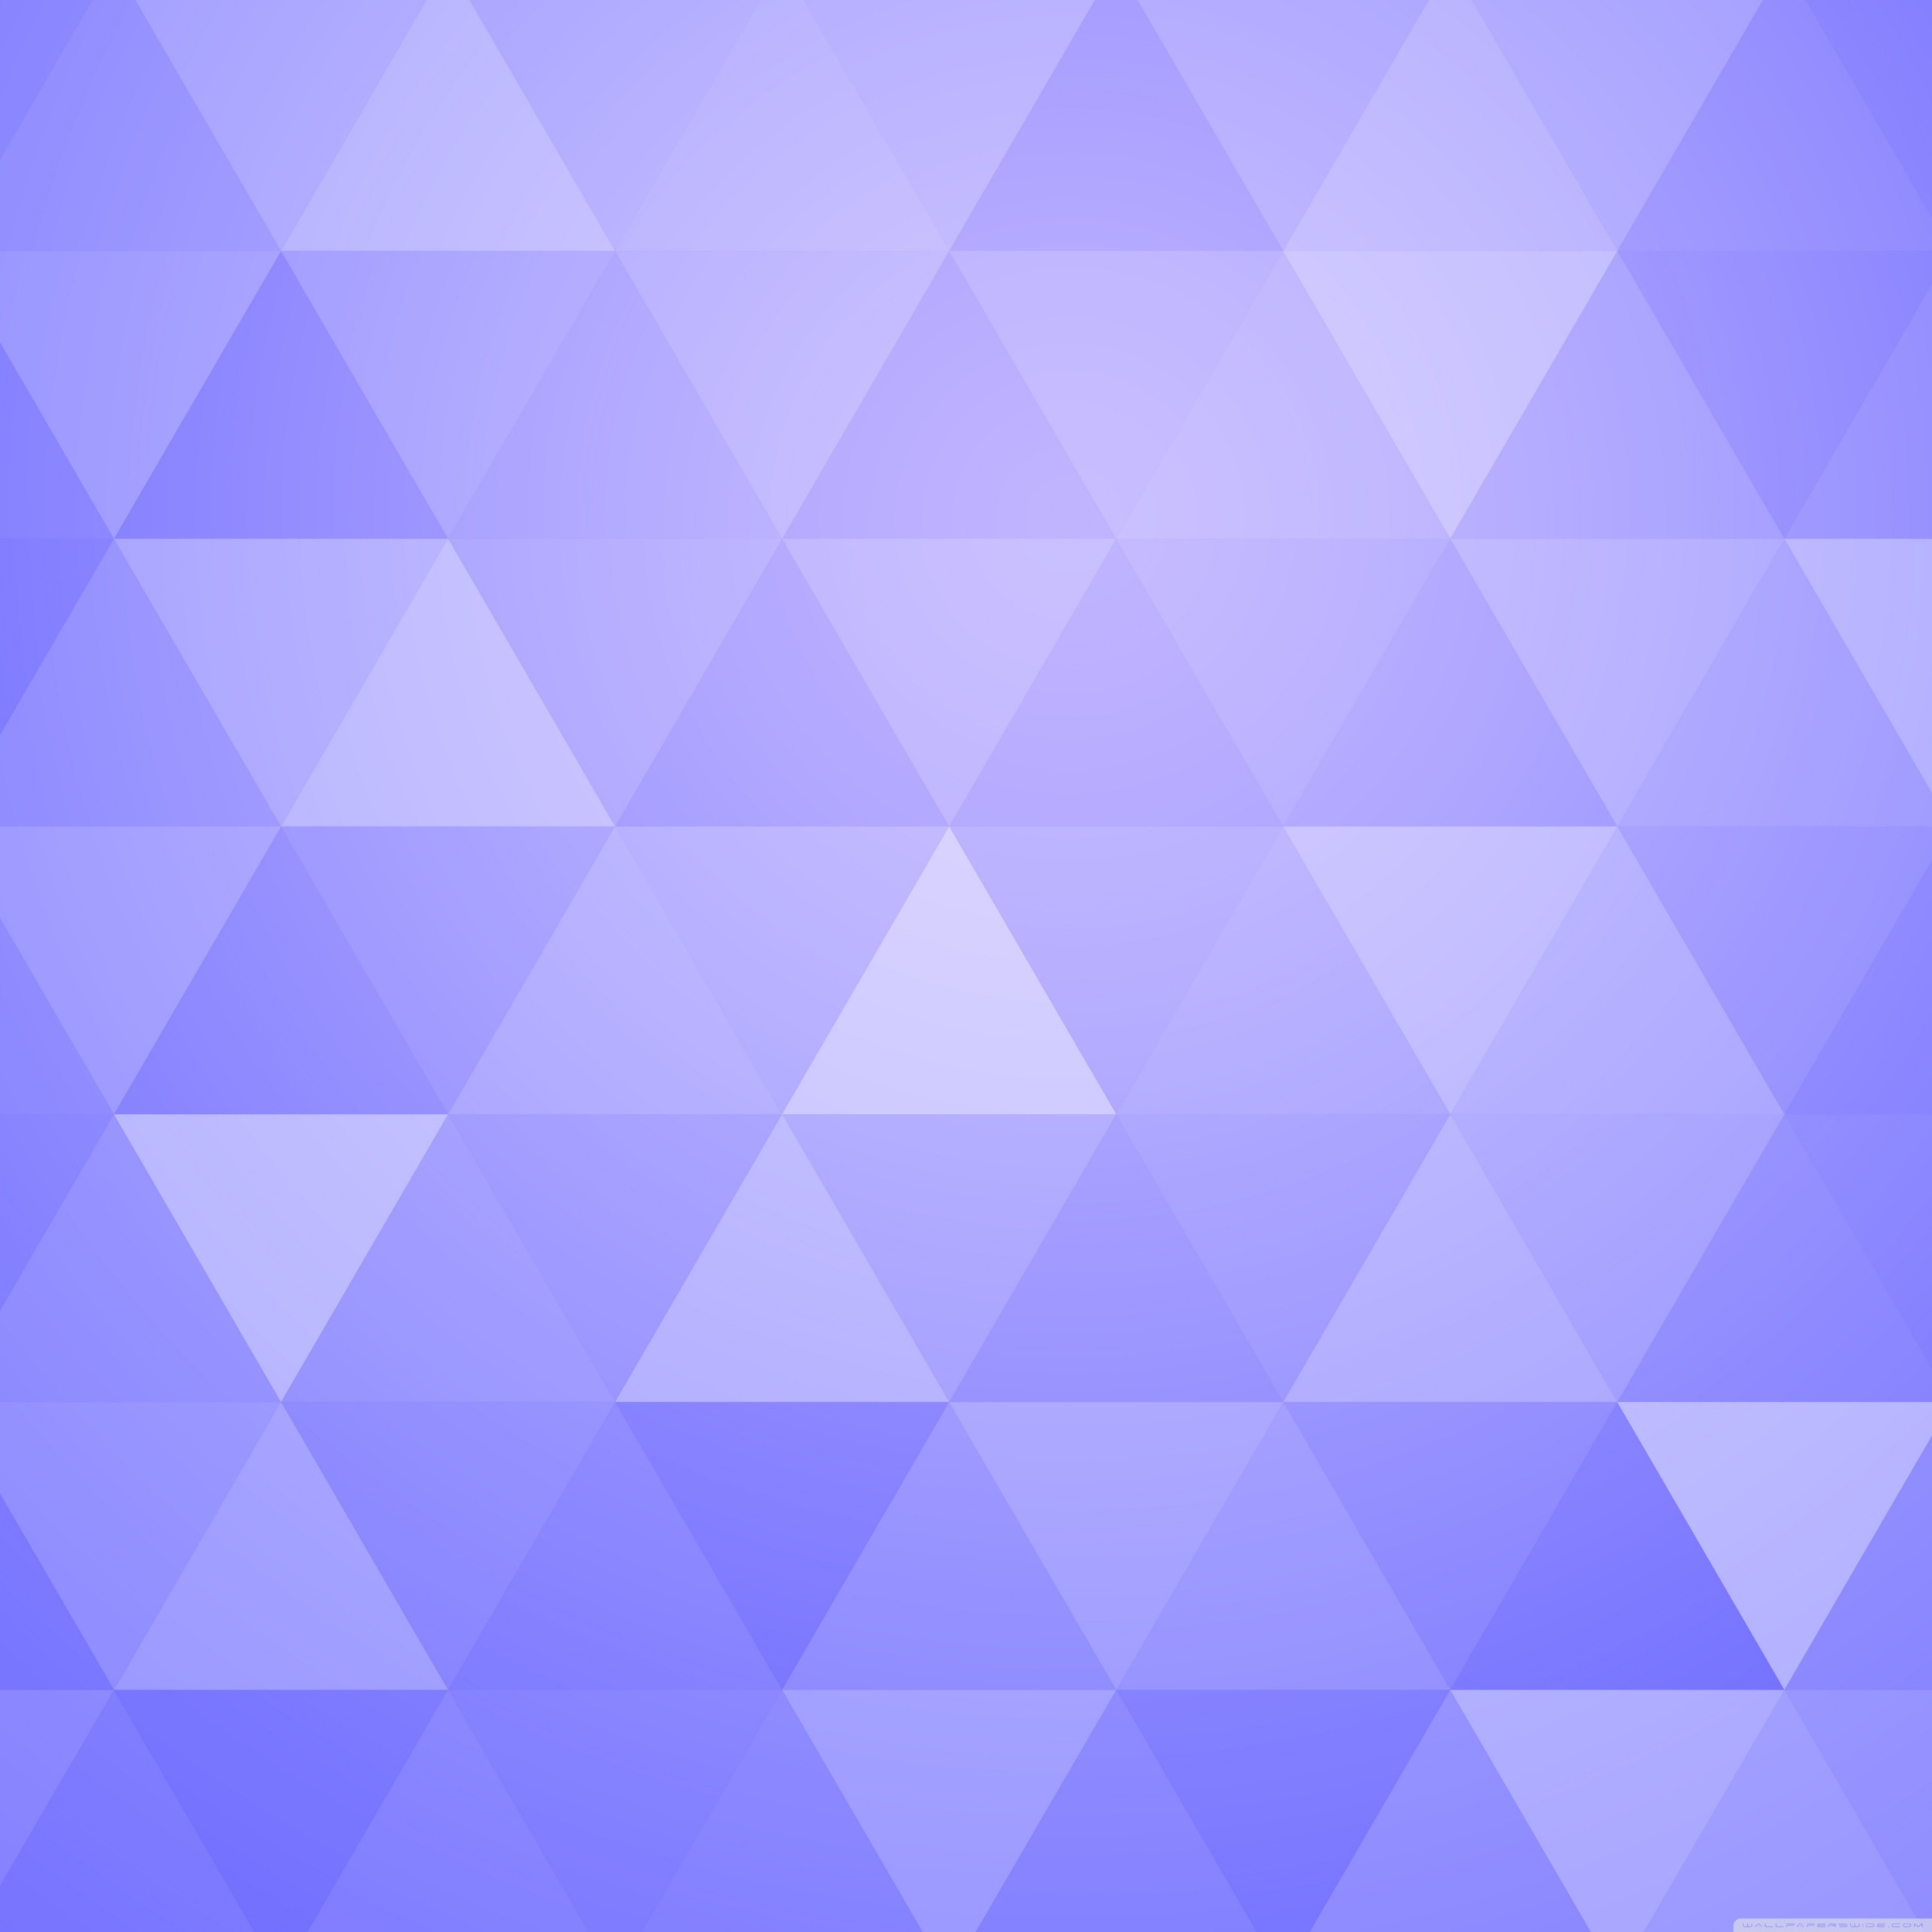 purple abstract geometric triangle background wallpapers